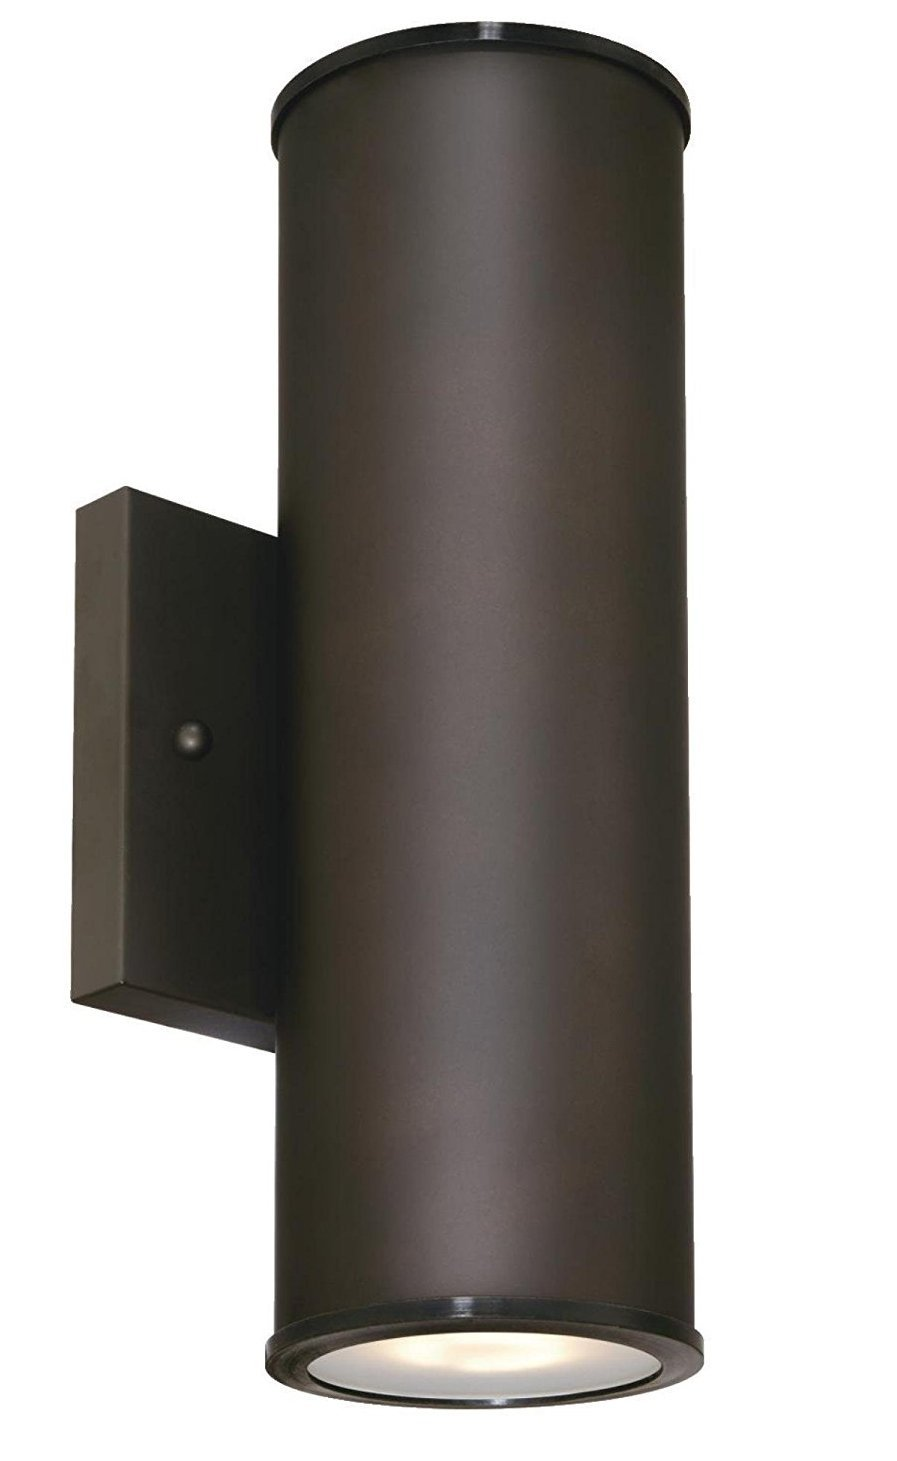 Two-Light LED Up and Down Light Outdoor Wall Fixture with Frosted Glass Lens, Oil Rubbed Bronze